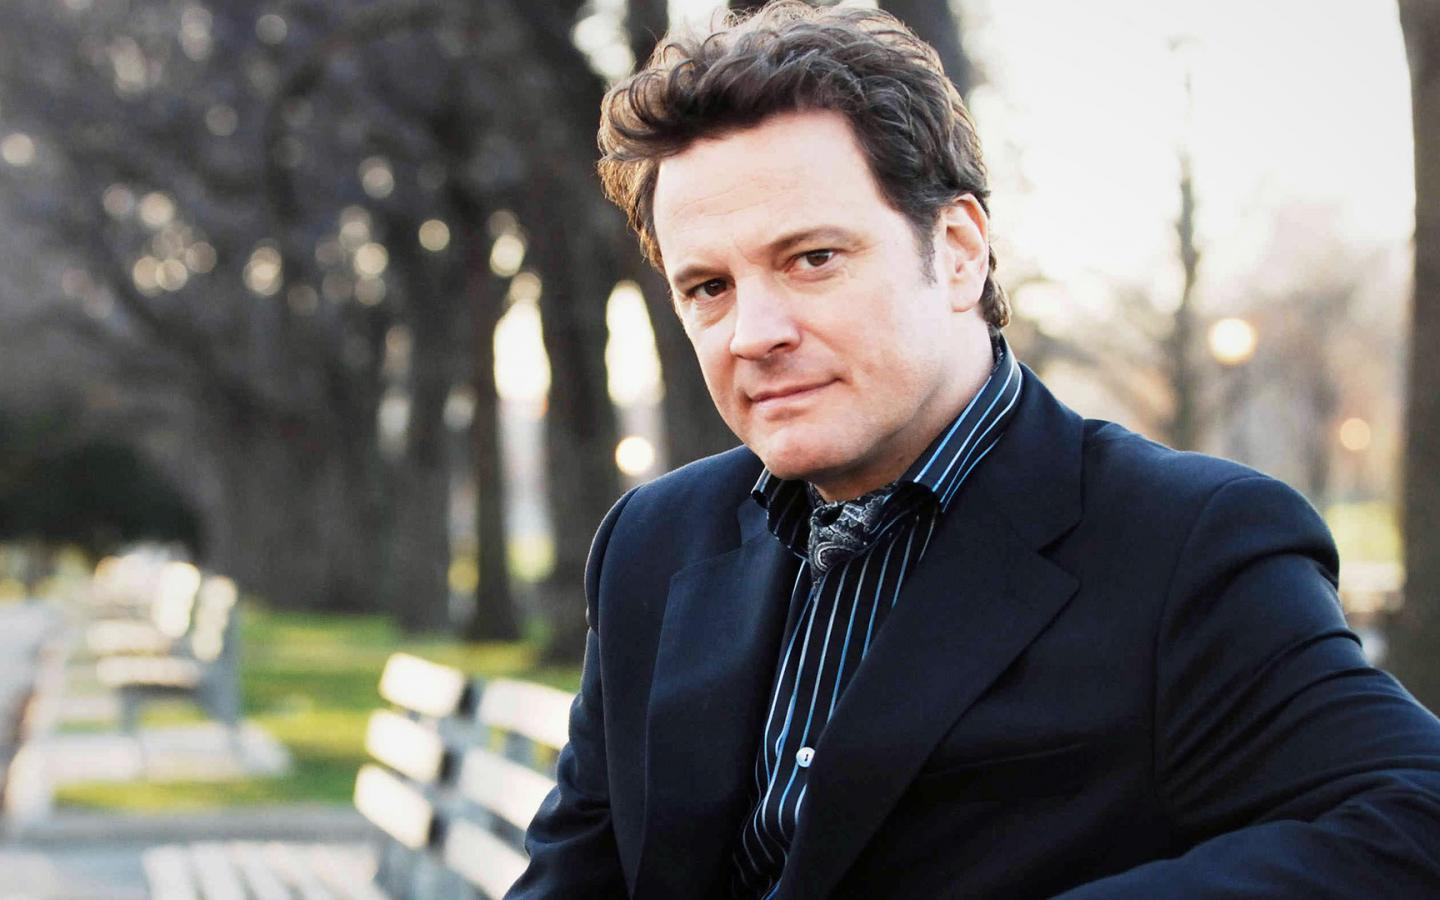 1440x900 - Colin Firth Wallpapers 29